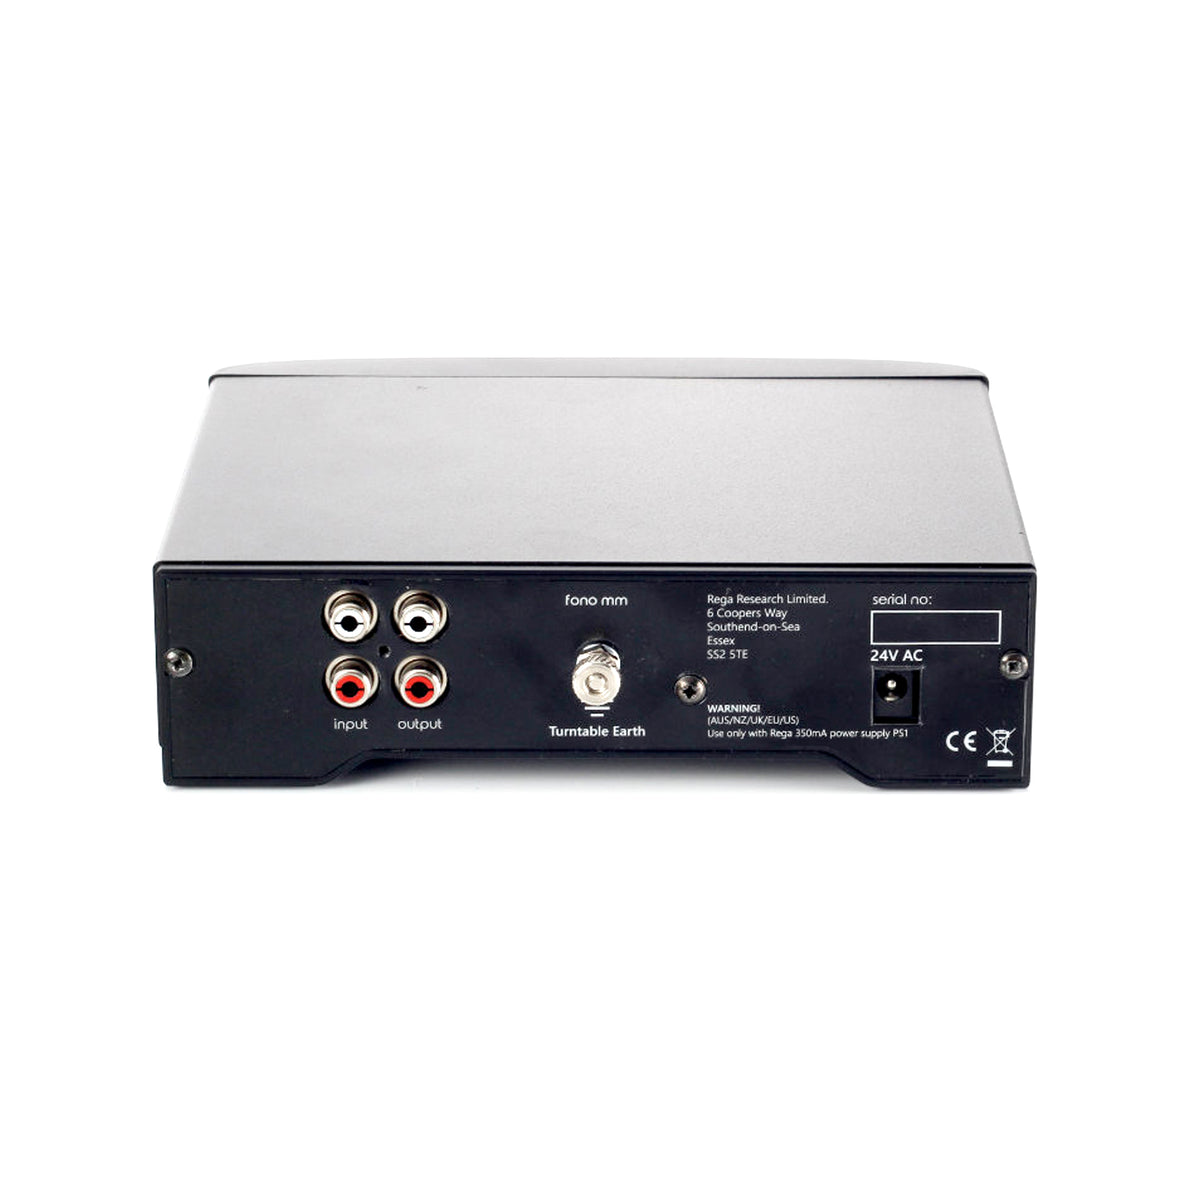 Rega: Fono MM Phono Stage Preamp